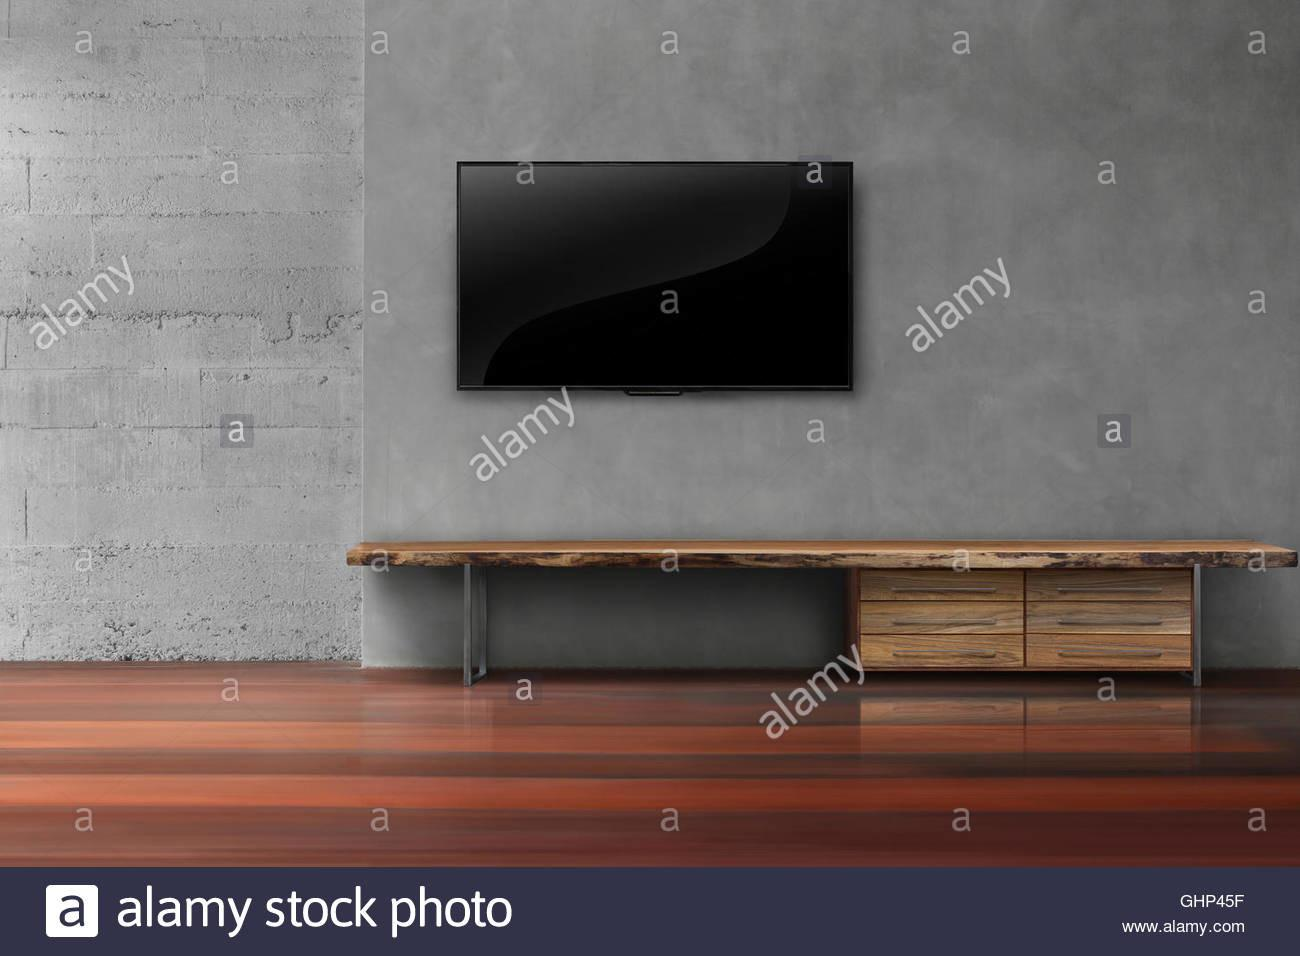 Led Concrete Wall Wooden Furniture Empty